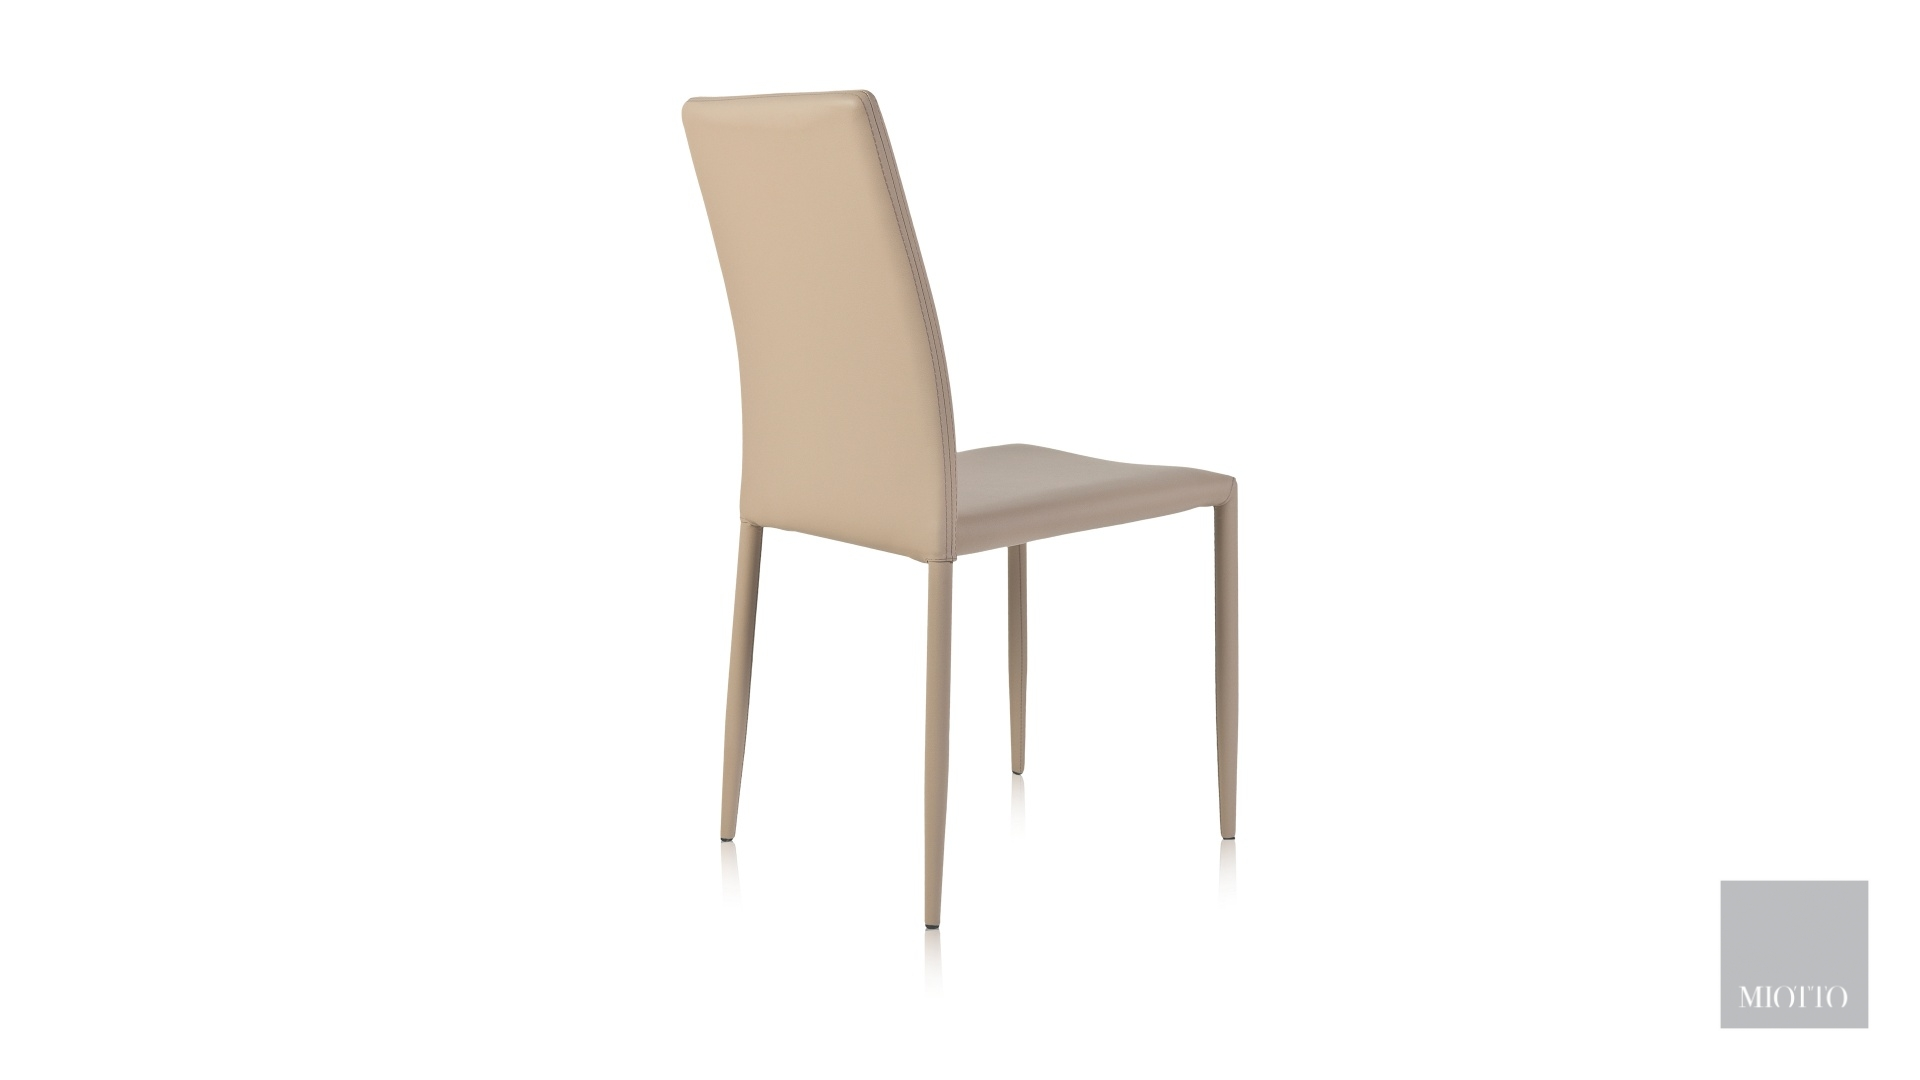 miotto_Lara dining chair pu cream back miotto furniture